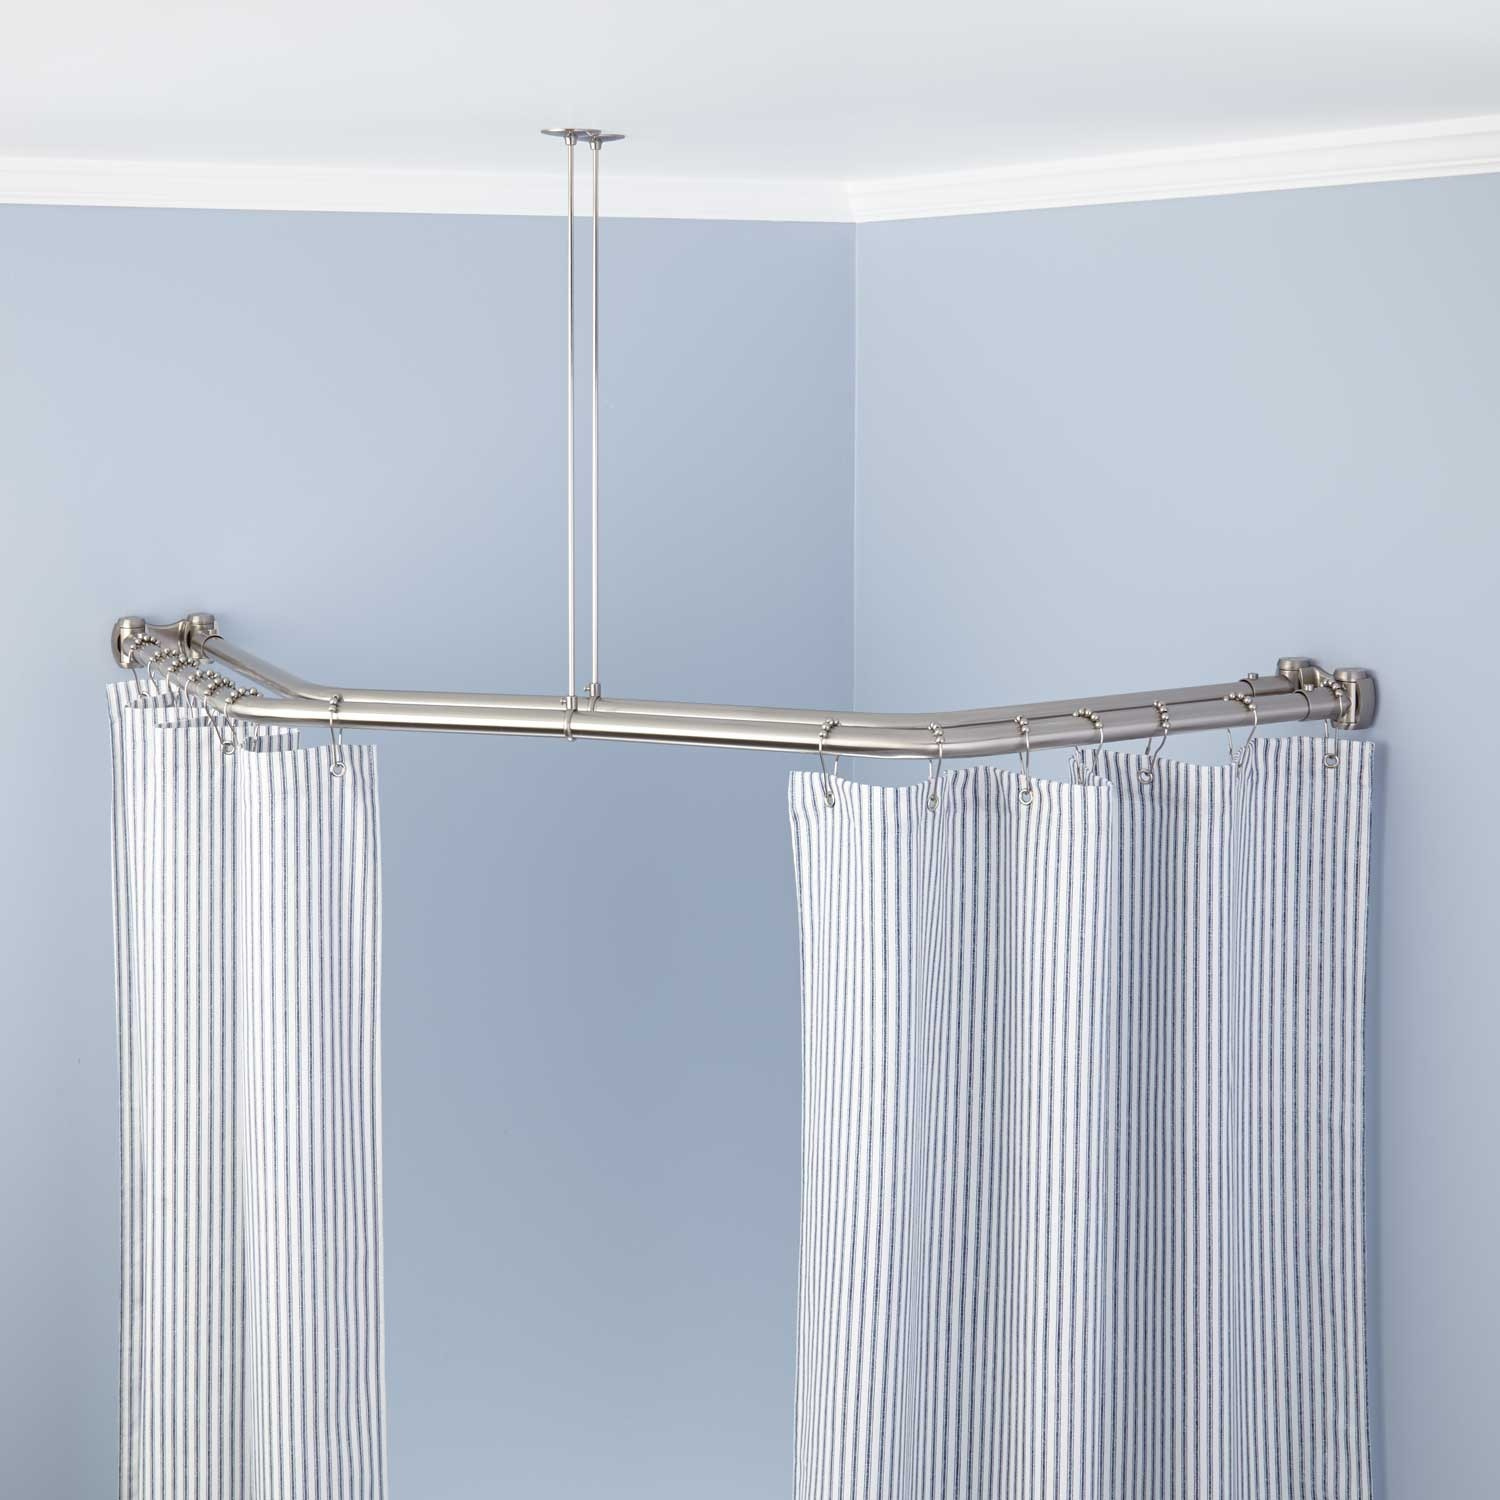 Curved Shower Curtain Rod For Corner Bath • Shower Curtains Ideas